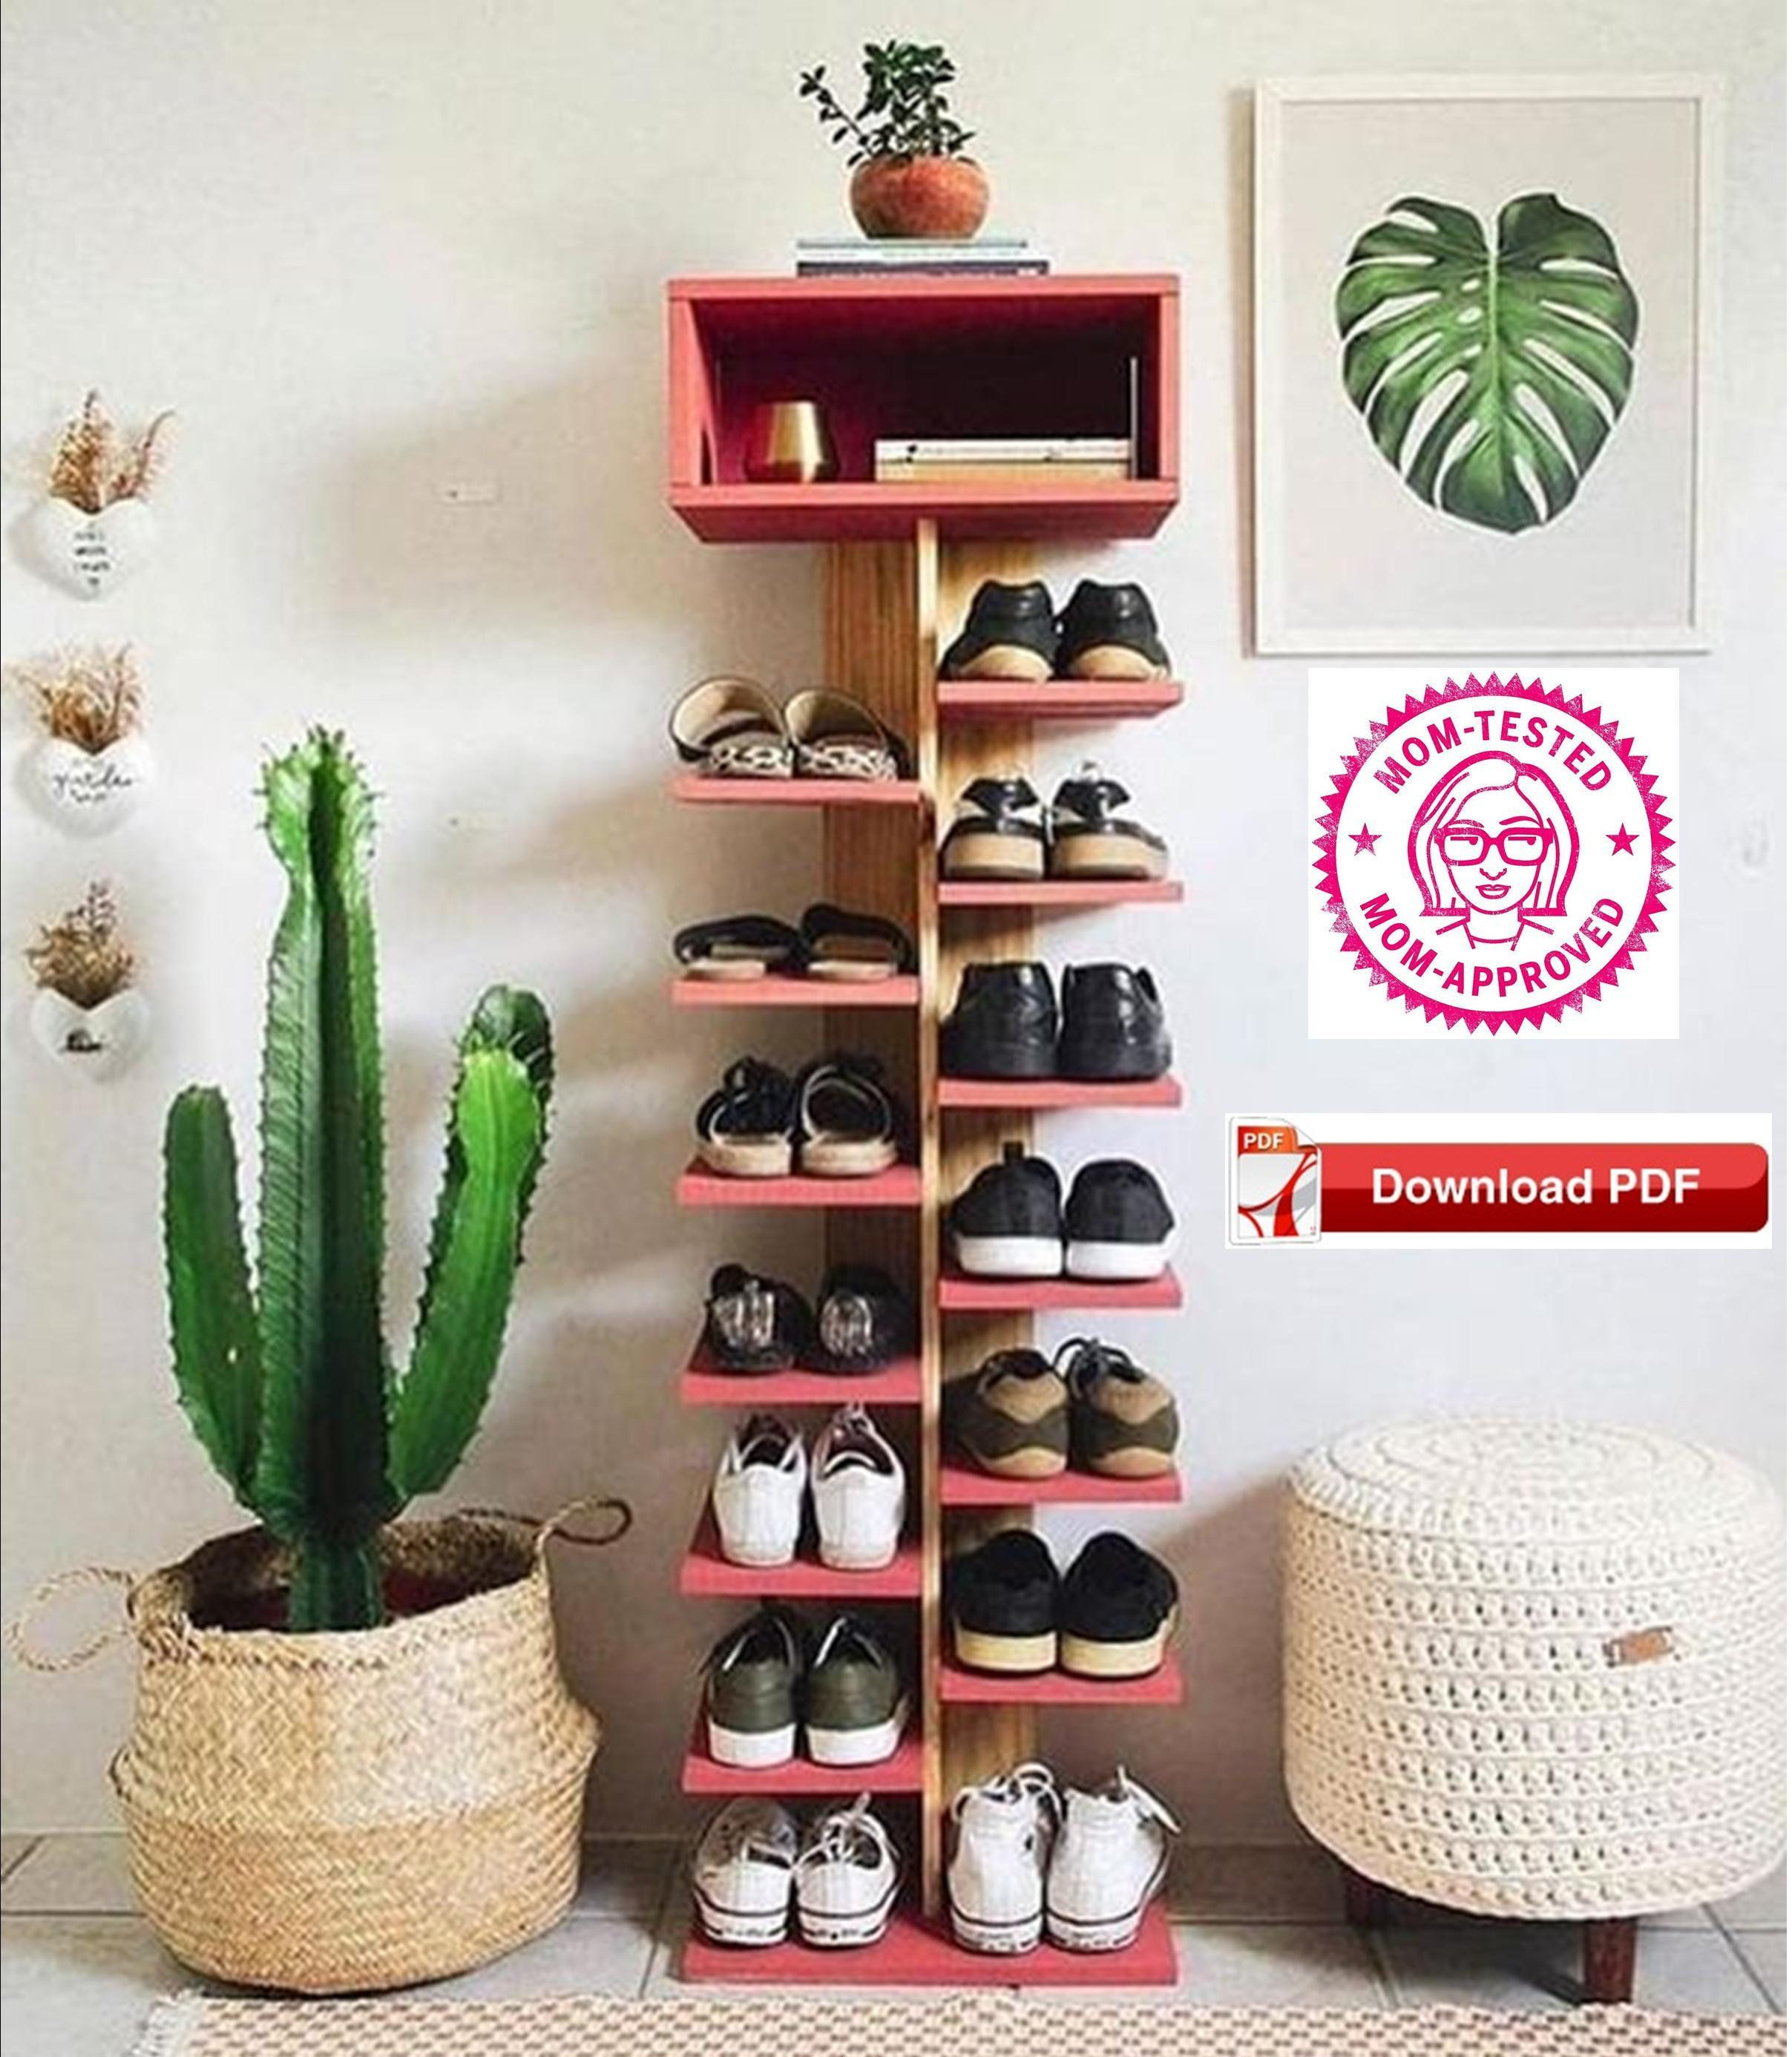 Shoe Rack Plan Shoe Tower Plan Shoe Shelf Plan Shoe